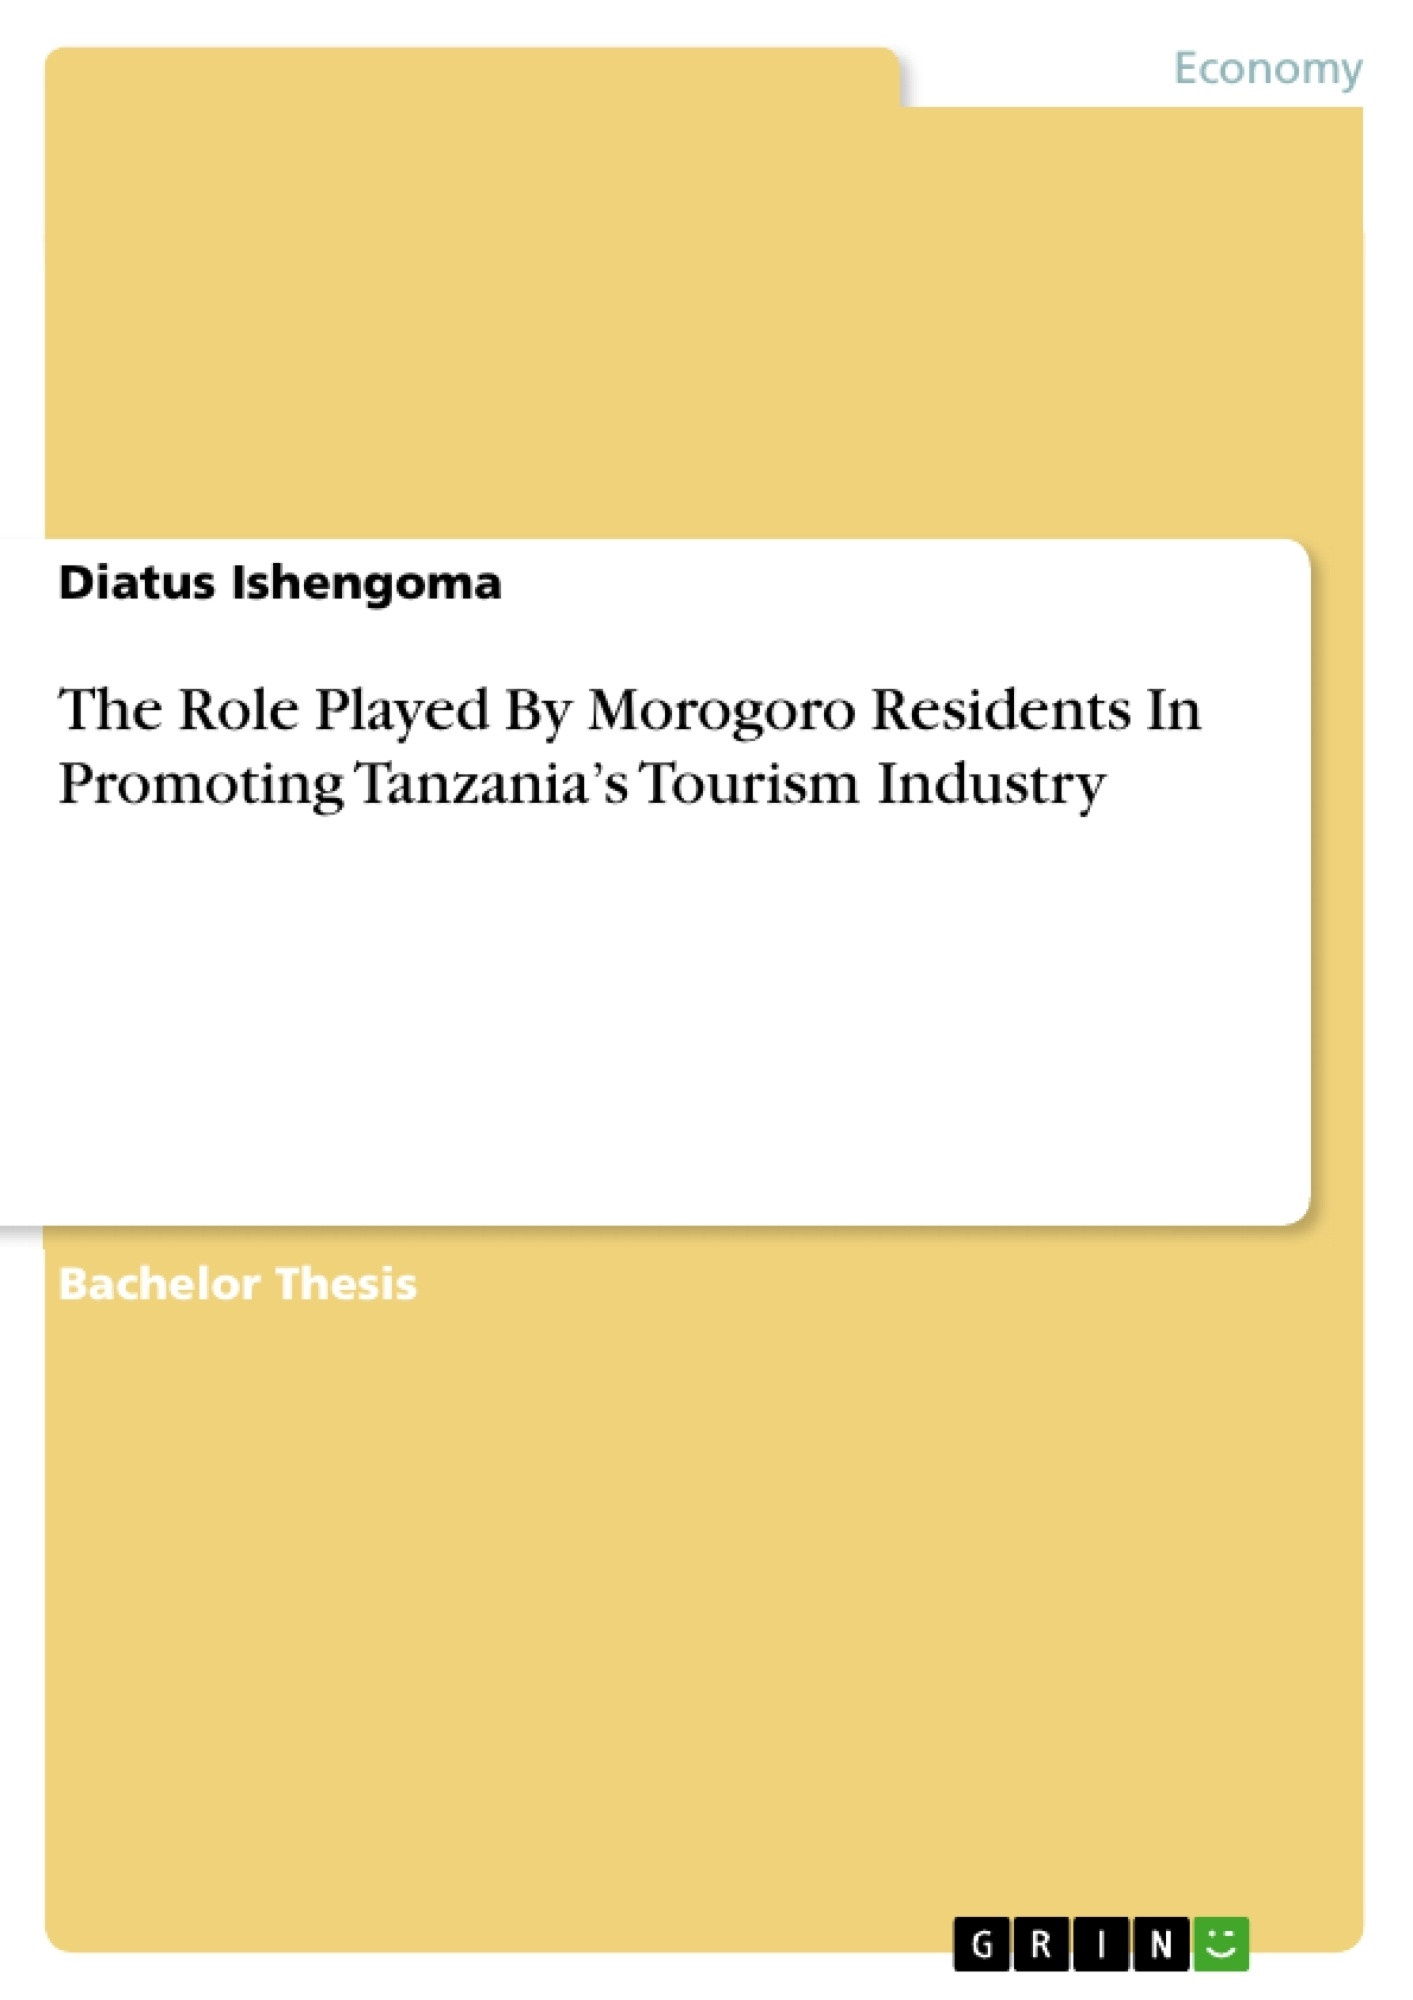 Title: The Role Played By Morogoro Residents In Promoting Tanzania's Tourism Industry